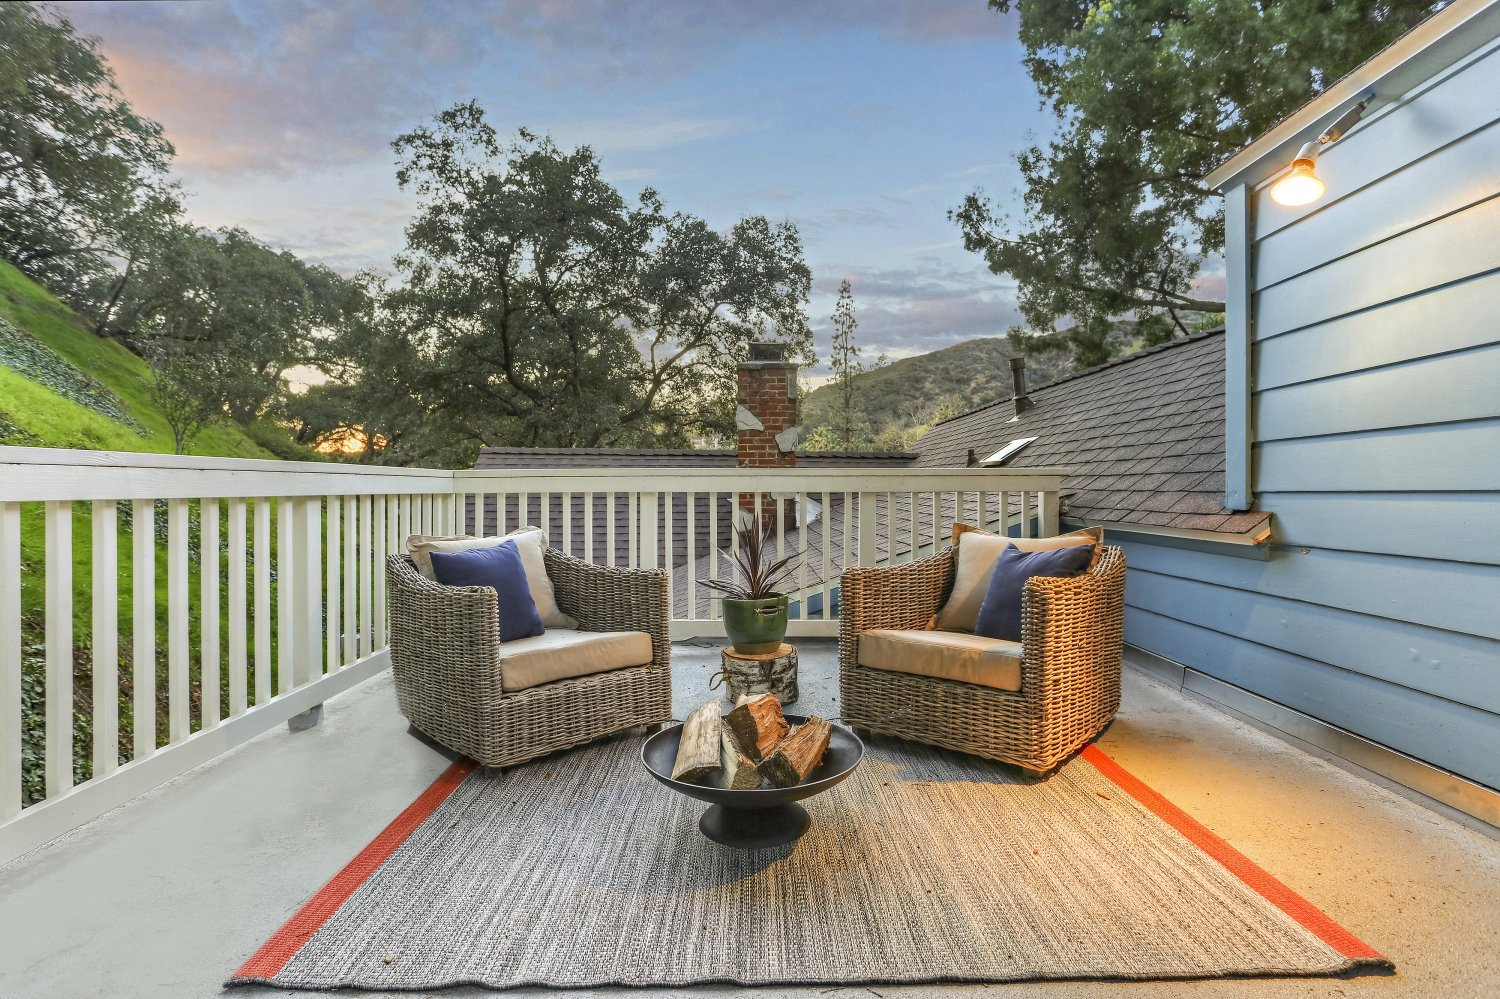 Dutch Cottage in Pennsylvania by Gerard Colford for sale. 2310 E Chevy Chase Dr. Glendale CA - Upper two-level patio sitting area